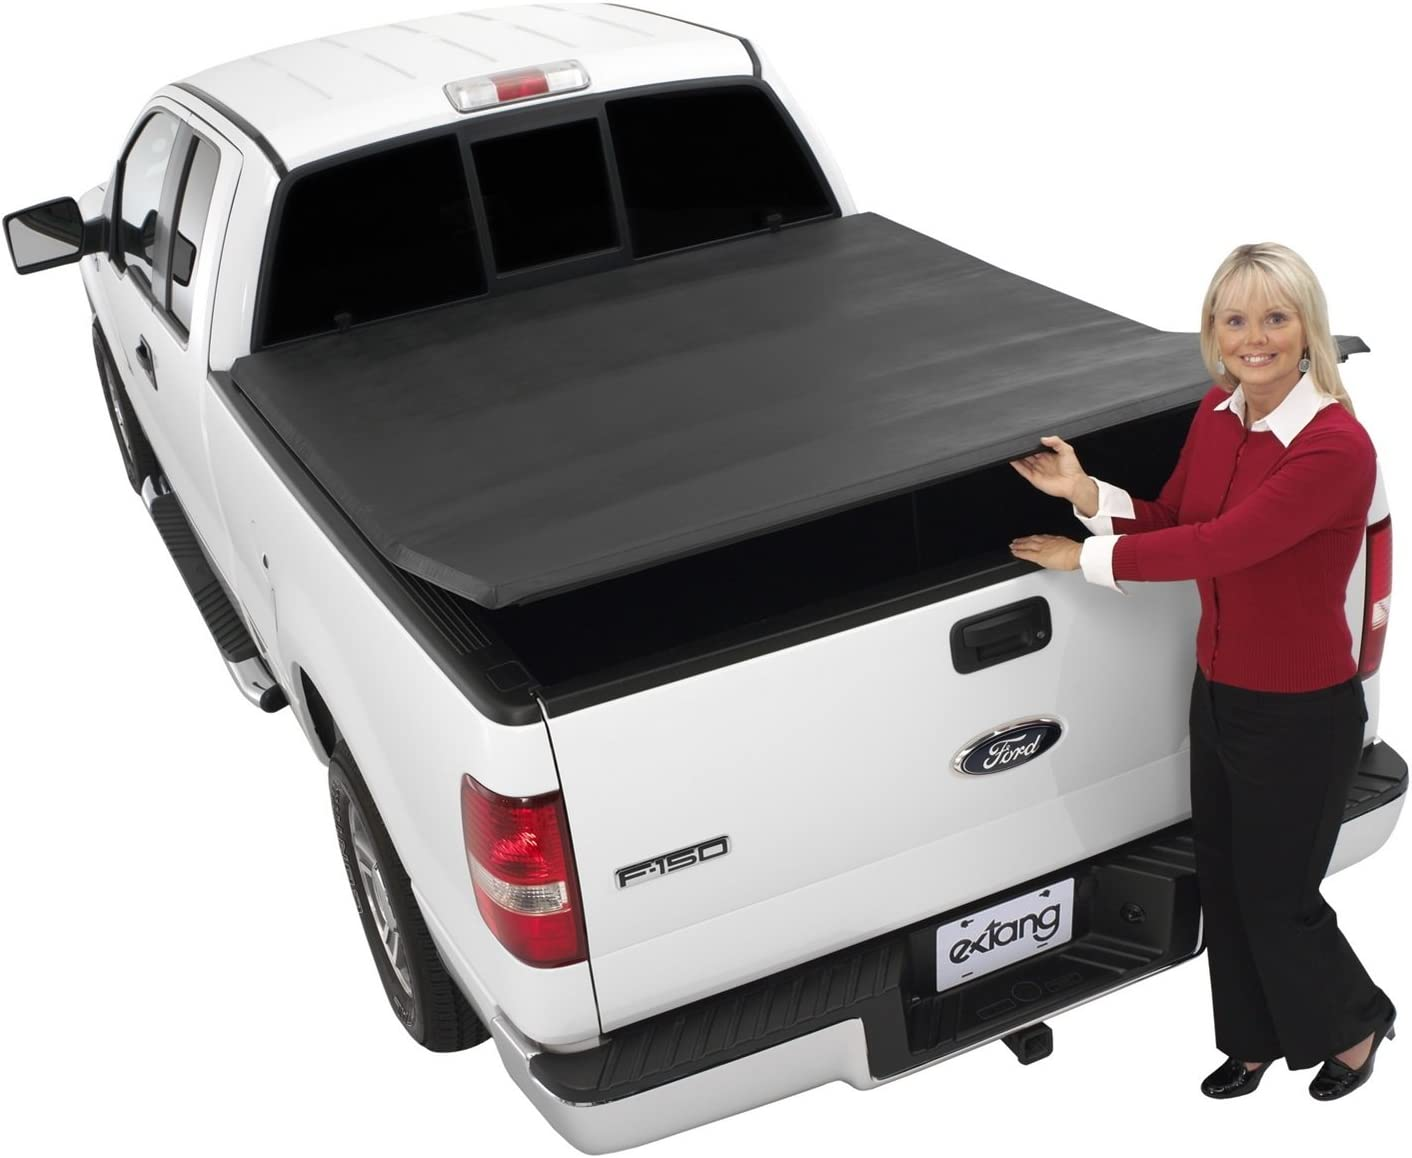 Extang 44405 Original Trifecta Trifold Truck Bed Cover